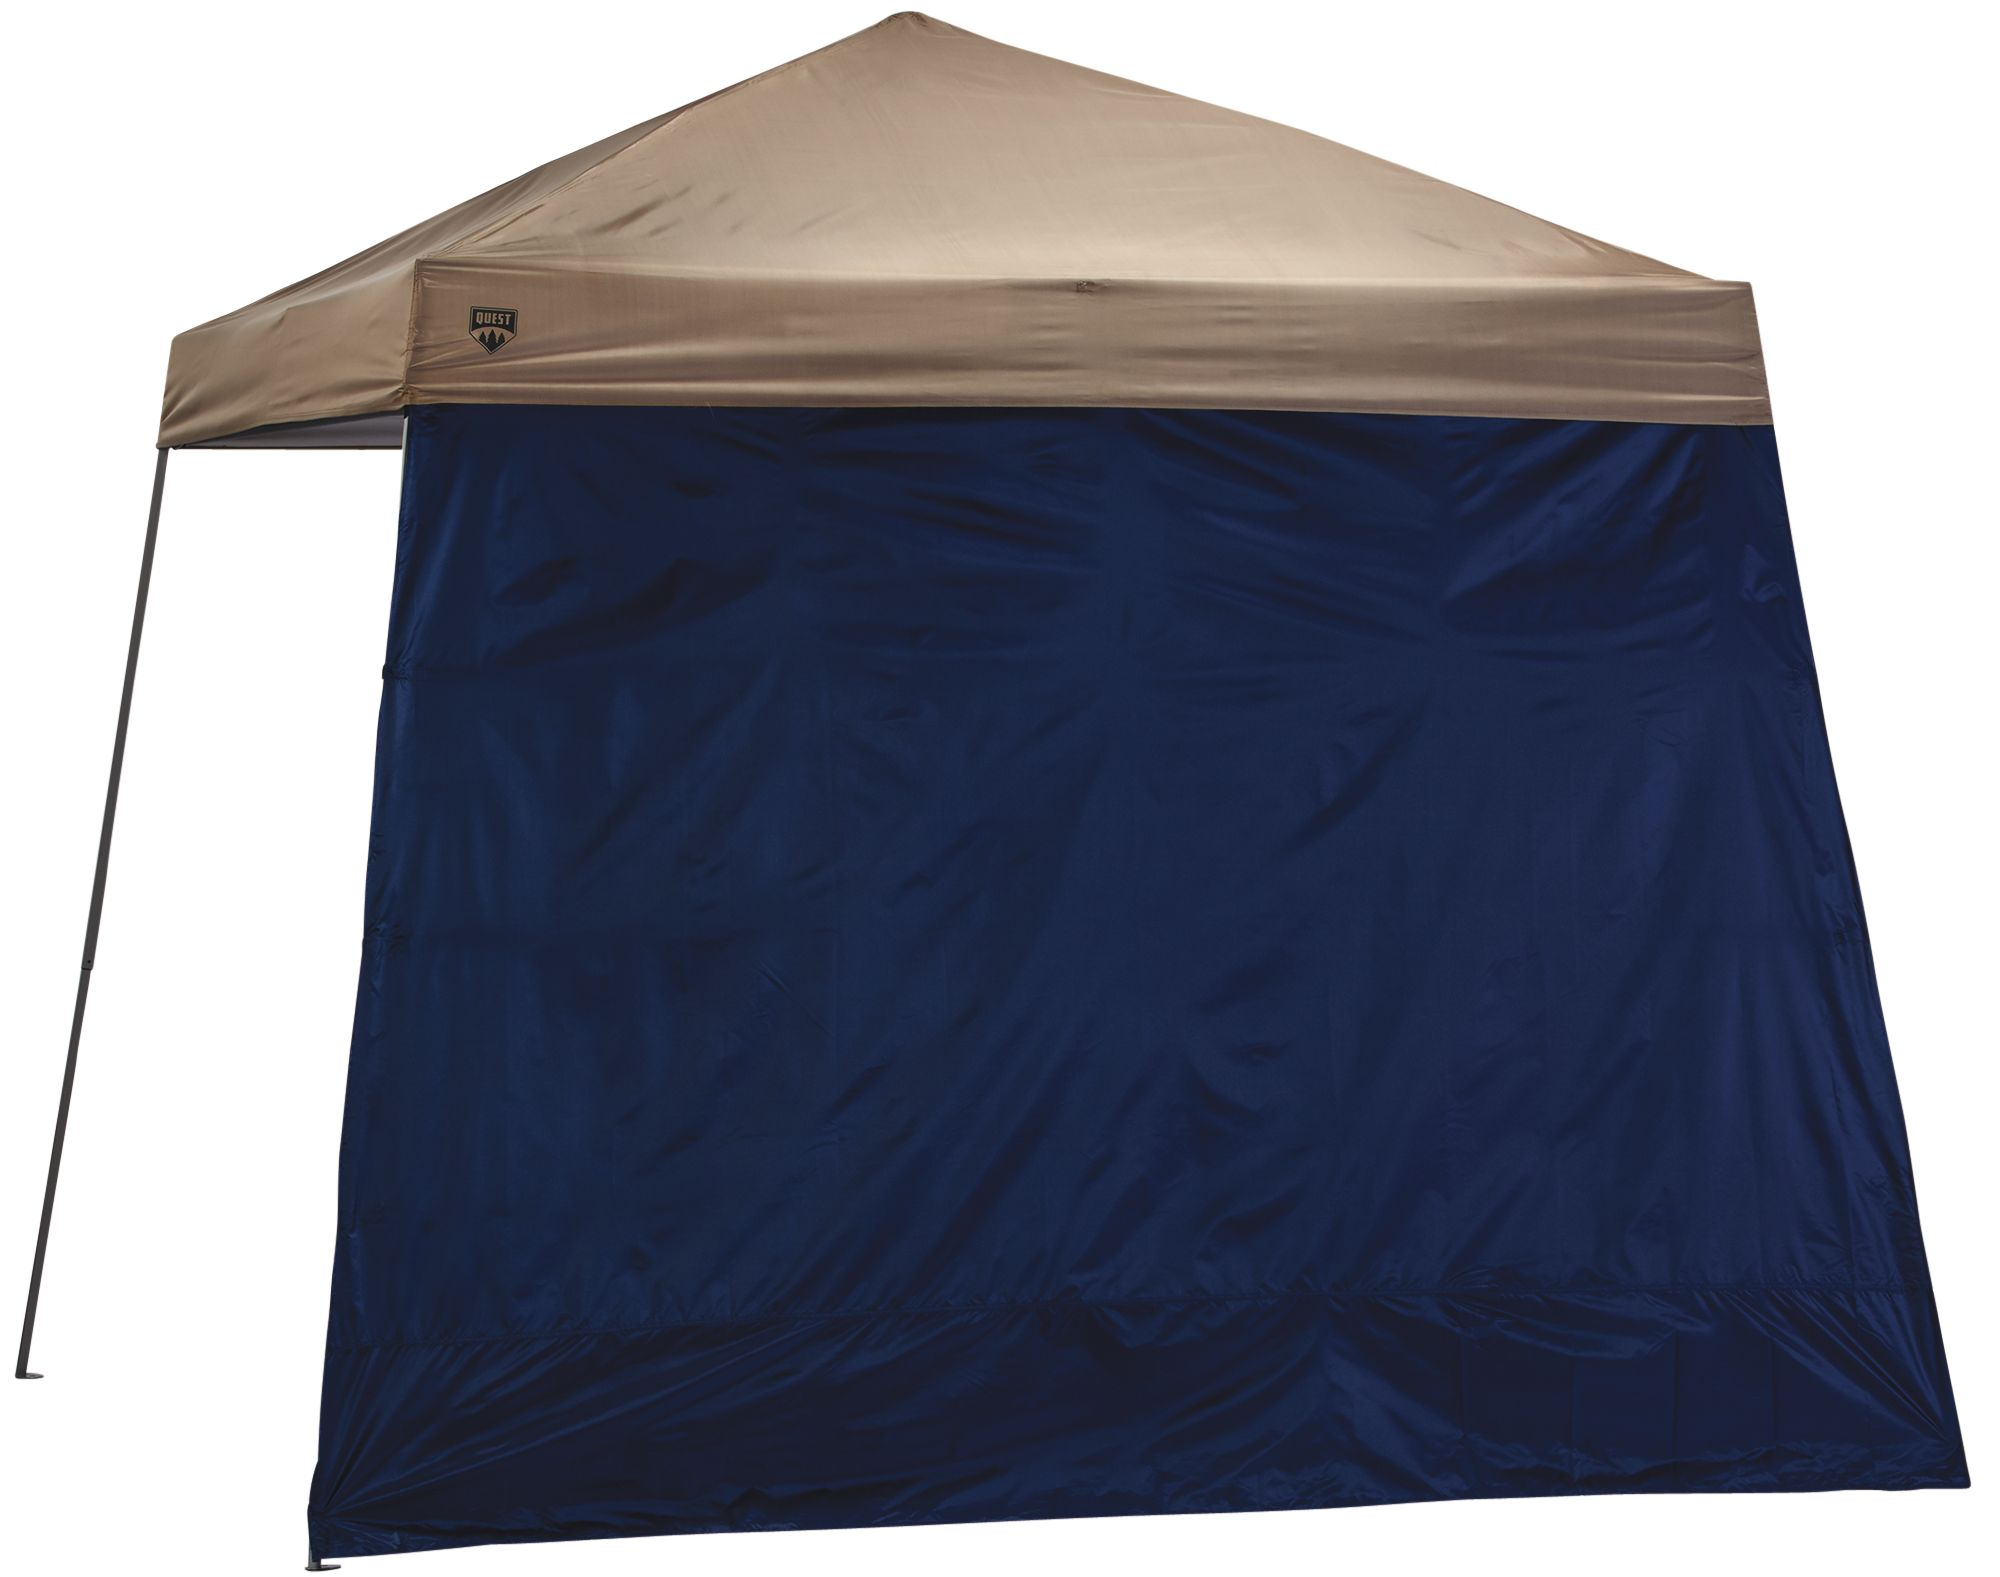 Product Image Quest 10u0027 x 10u0027 Slant Leg Canopy Sidewall  sc 1 st  DICKu0027S Sporting Goods & Quest Canopy Tents | Best Price Guarantee at DICKu0027S